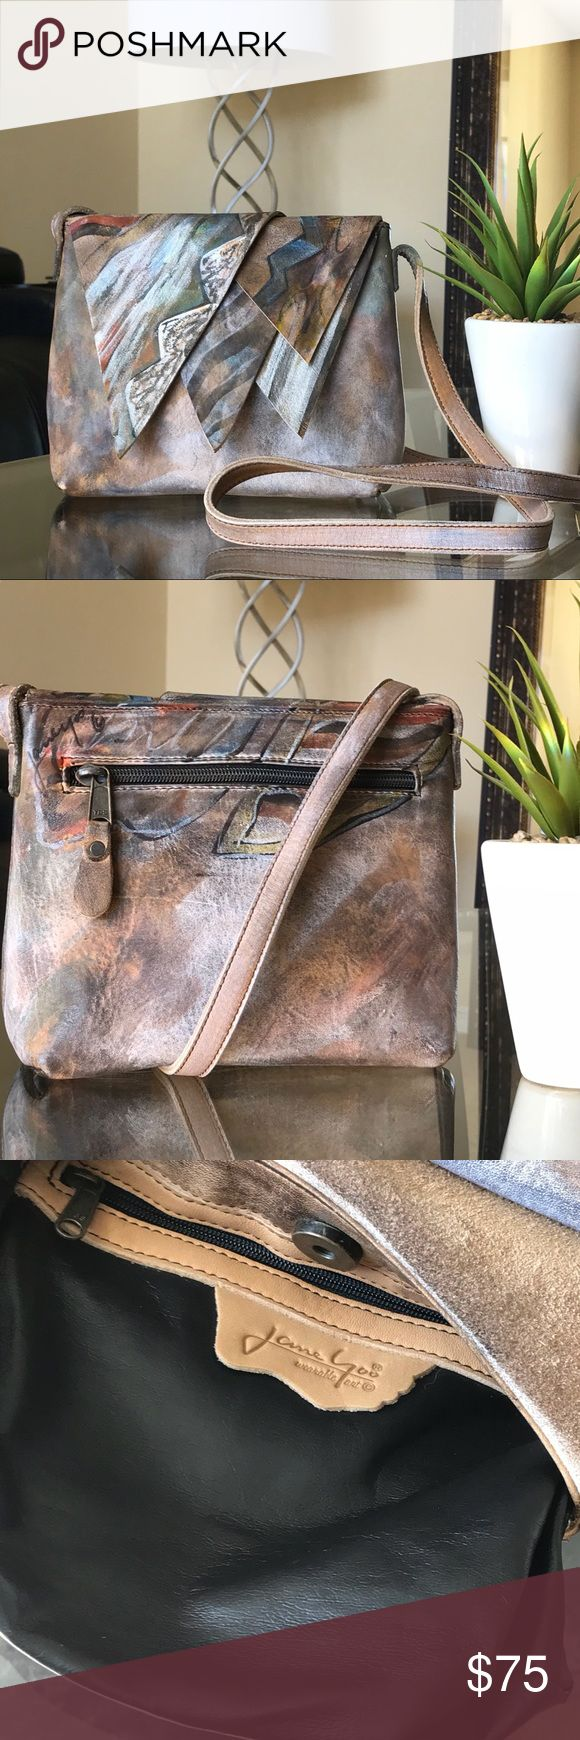 """✨JANE YOO wearable art 🎨Leather Hand Painted Bag✨ ✨👜 Designer JANE YOO wearable art✨🎨 100% Leather """"Hand Painted One-Of-A-Kind"""" Crossbody Bag. Color: Tan/Metallic/plethora of other Earth-Toned colors(Please refer to pictures). Condition: In EUC❣️ Crossbody features: (1)Exterior zip pocket and (1)Interior zip pocket. Asymmetrical flap opening, secured by a strong magnetic closure. Approximately 7.25""""W x 6.25""""L x 2.76""""D. Approximately a 21.5""""L Strap Drop. This style & design is truly…"""